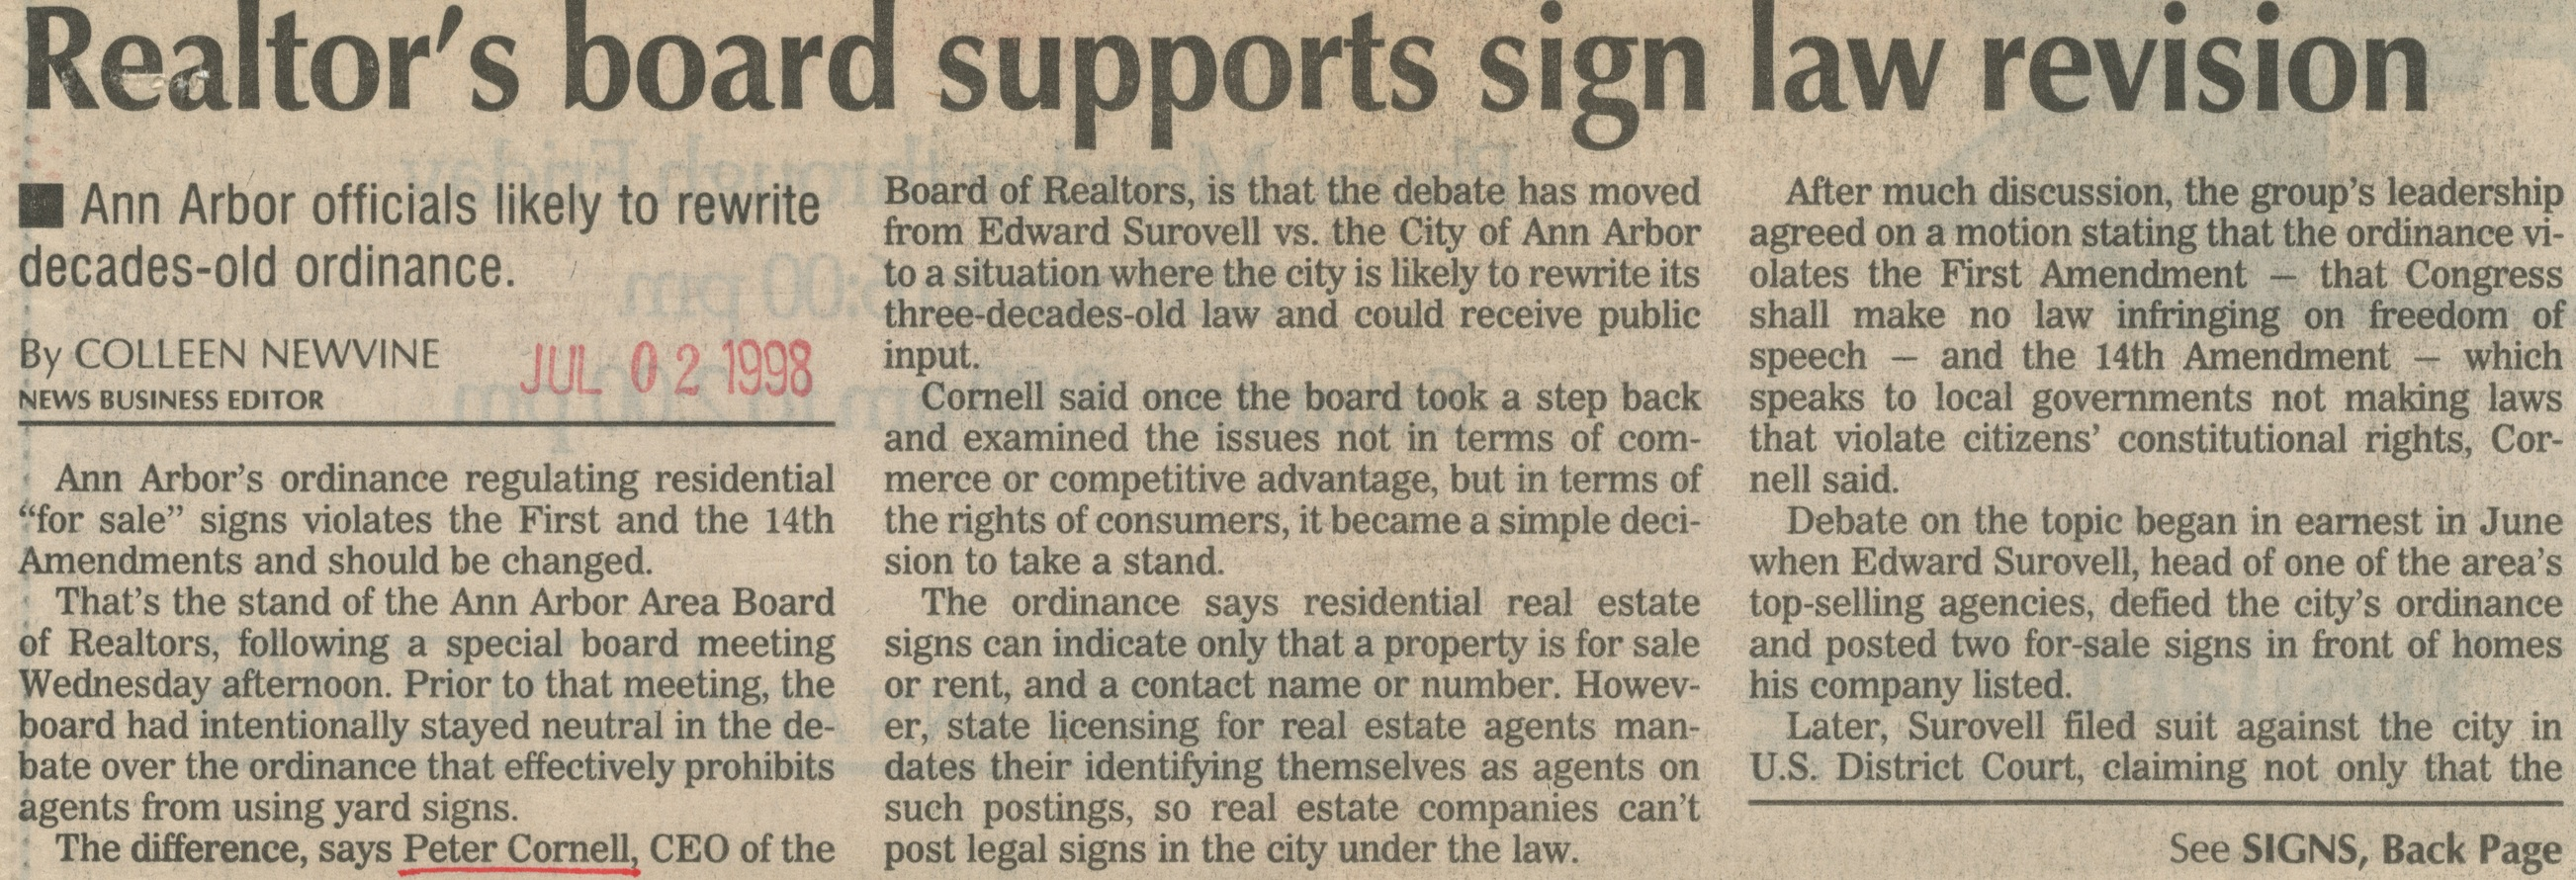 Realtor's Board Supports Sign Law Revision image